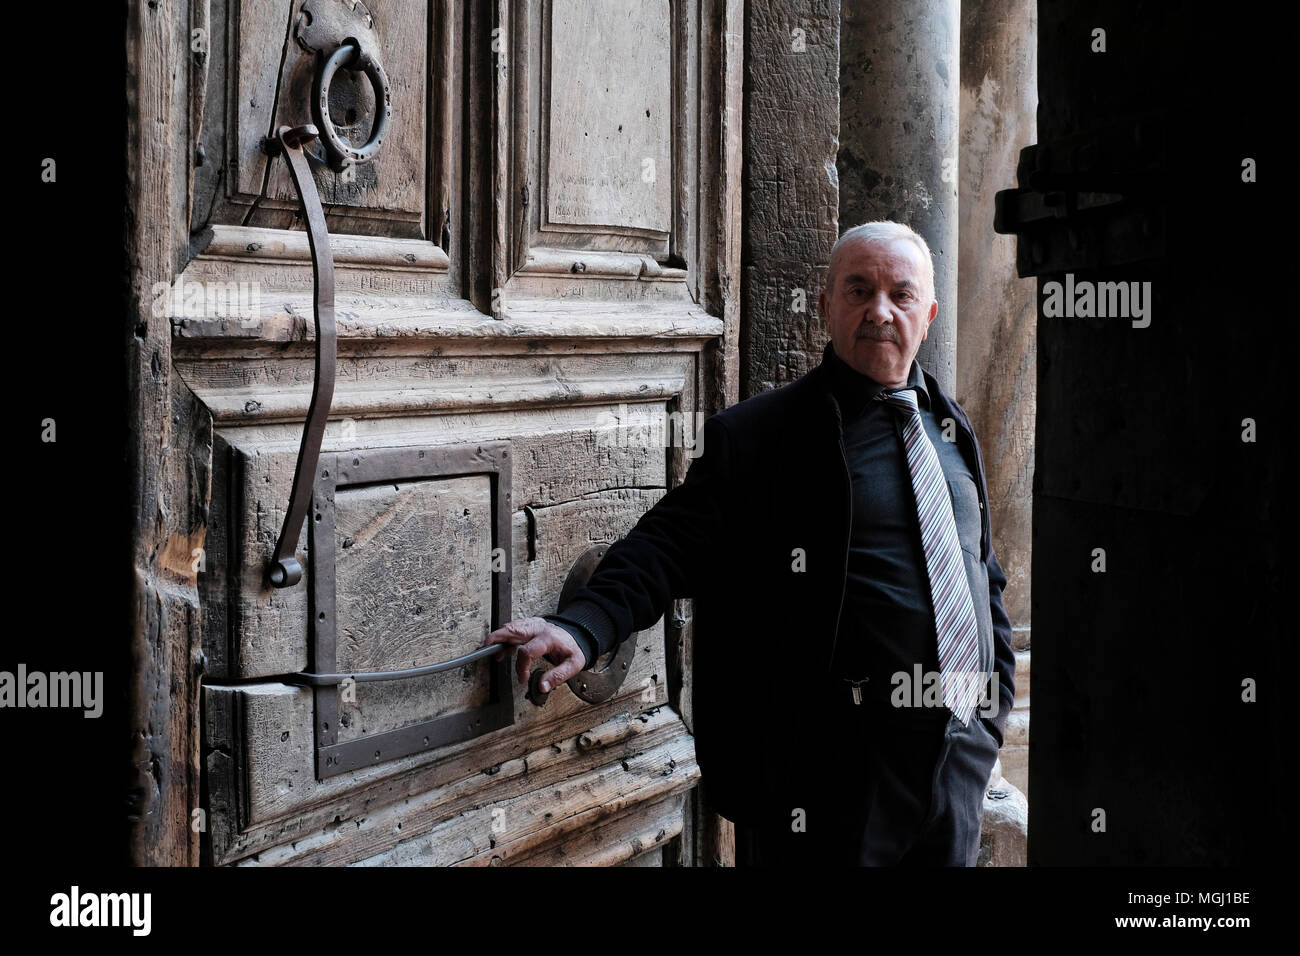 Wajeeh Nuseibeh, a Muslim whose family has opened and closed the Holy Sepulcher since the Ottoman era posing at the doors of the church of Holy sepulchre in old city East Jerusalem Israel. The custody of the door and the key for the Church of the Holy Sepulchre is entrusted to two Muslim families (Nuseibeh and Judeh) and it has been like this for centuries. - Stock Image